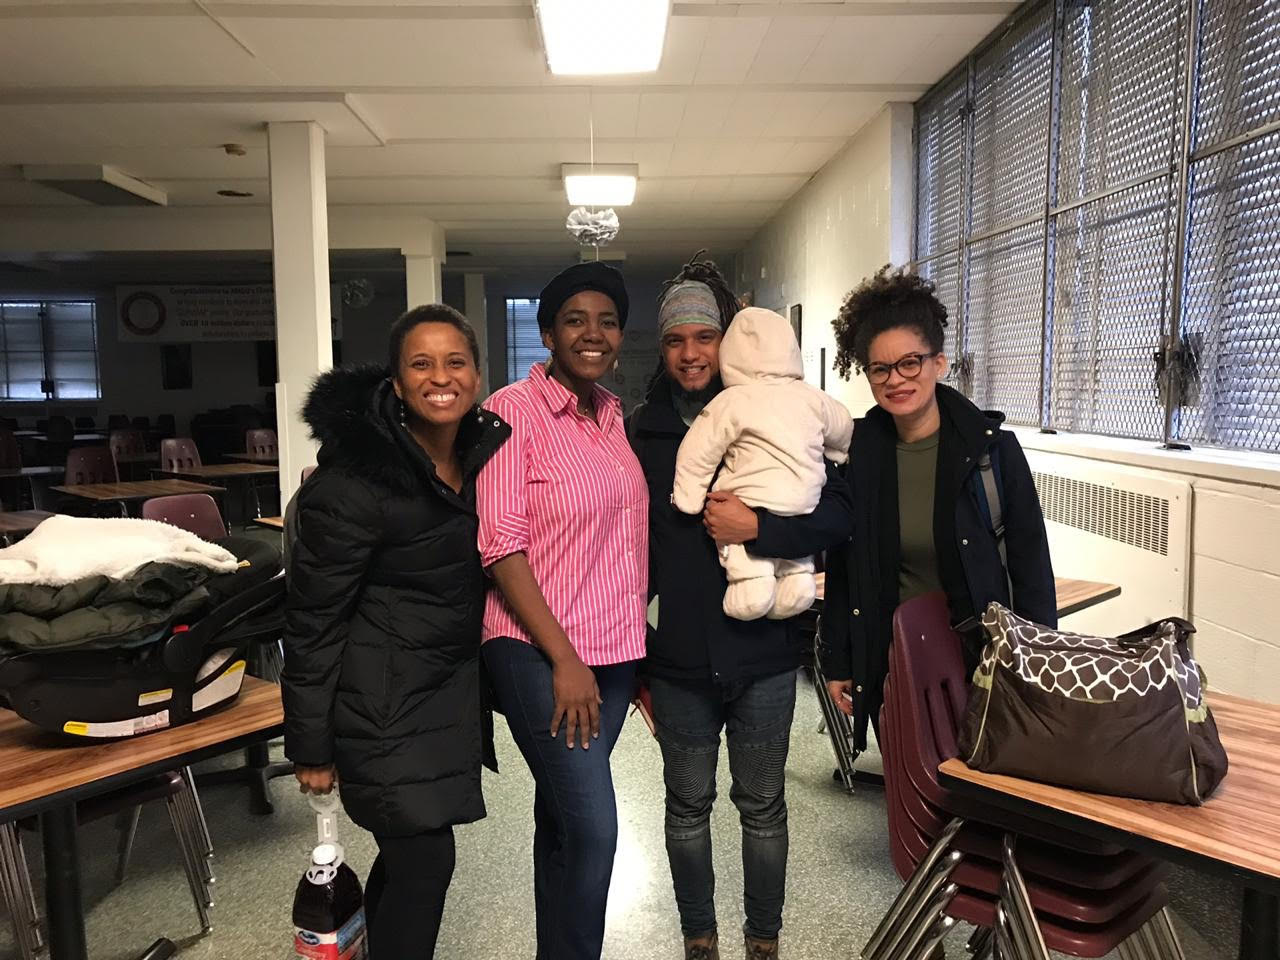 Miriam Neptune, Altagracia Jean Joseph, Alexis Francisco, and another facilitator stand in a row posing for the photo. Miriam is also holding a baby.